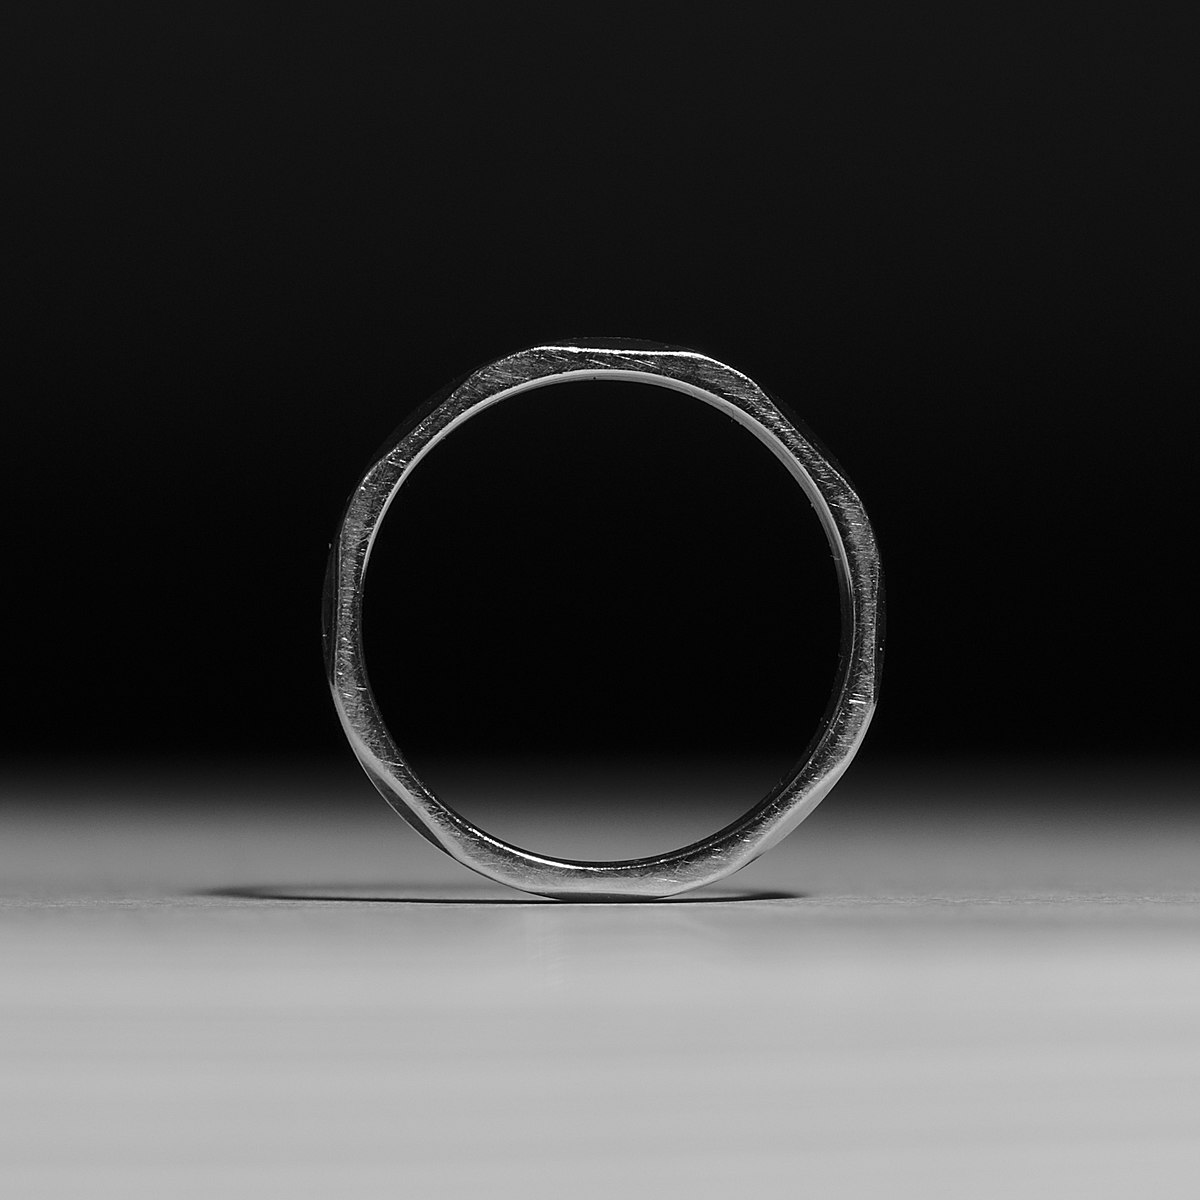 rings wedding mechanical studio design object